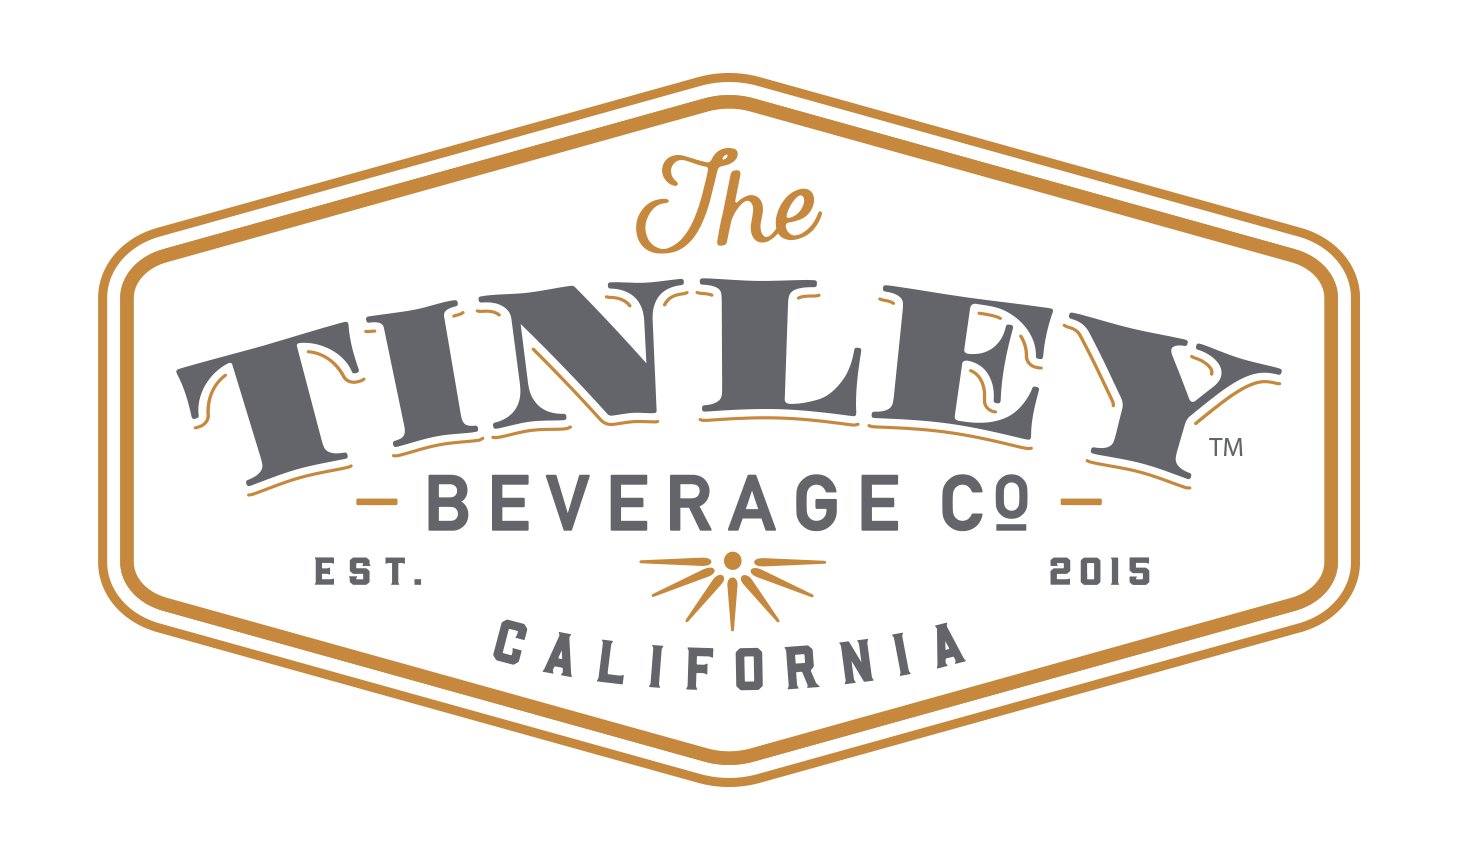 Tinley Grows Asset Base to over $7 Million at Its Long Beach Facility and Experiences Rapid Revenue and Margin Growth